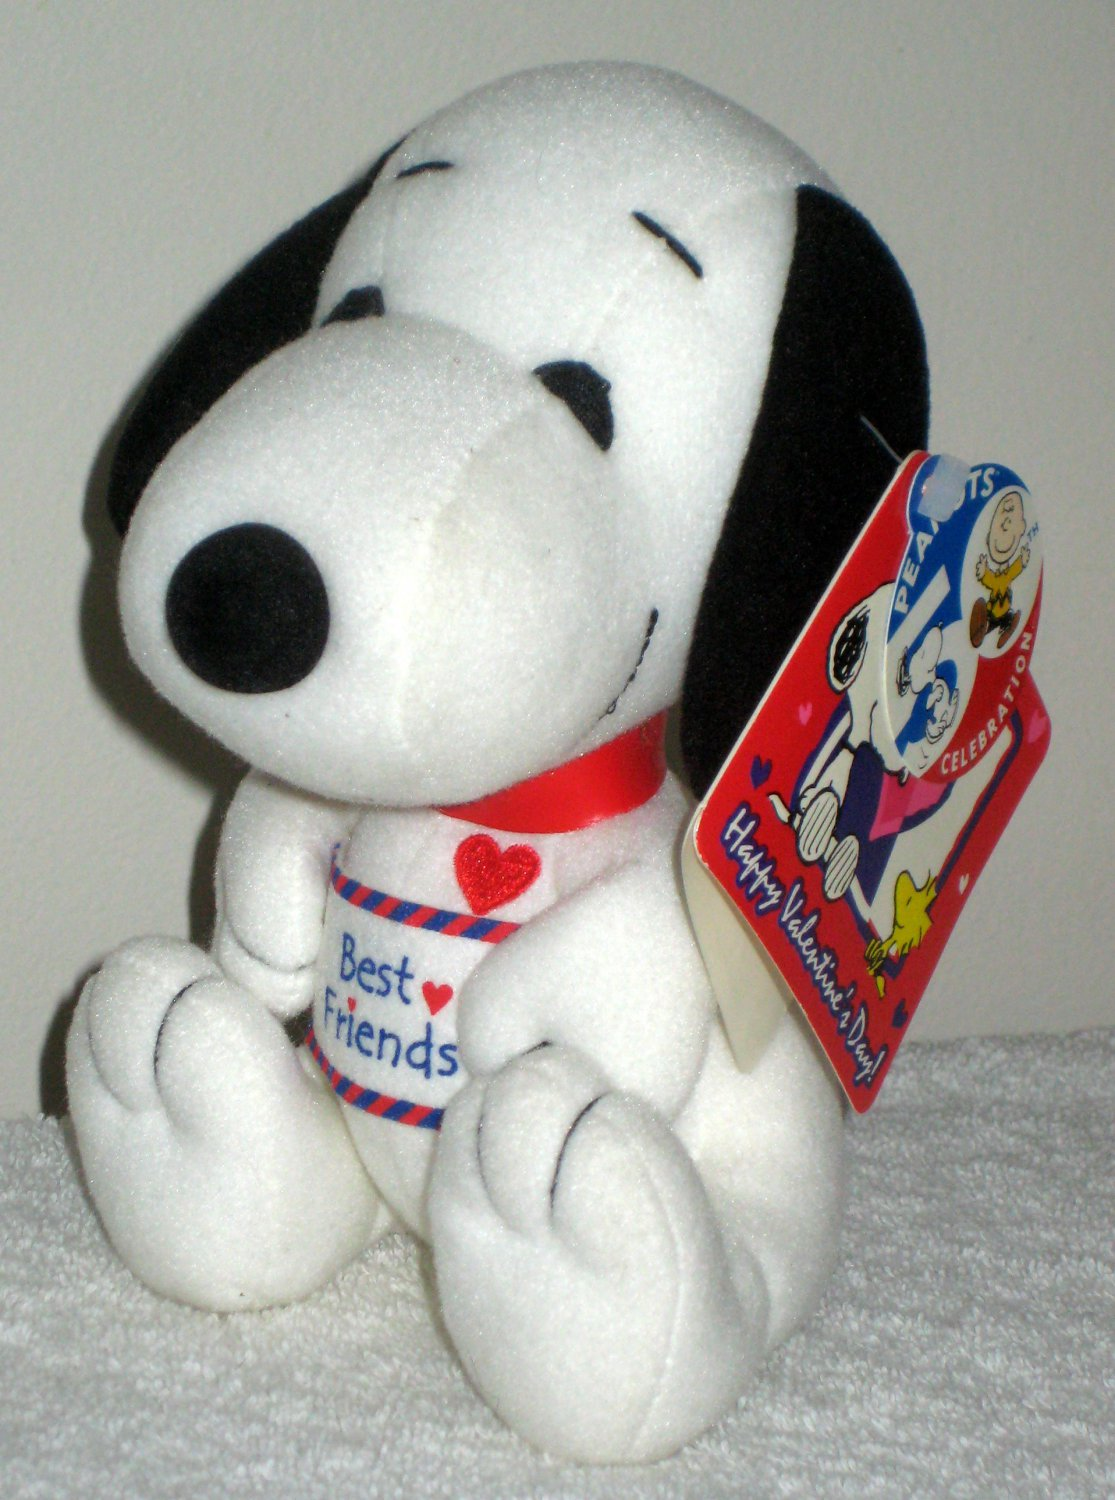 Sold Baby Snoopy Plush Doll Squeak Toy Best Friends 50th Celebration